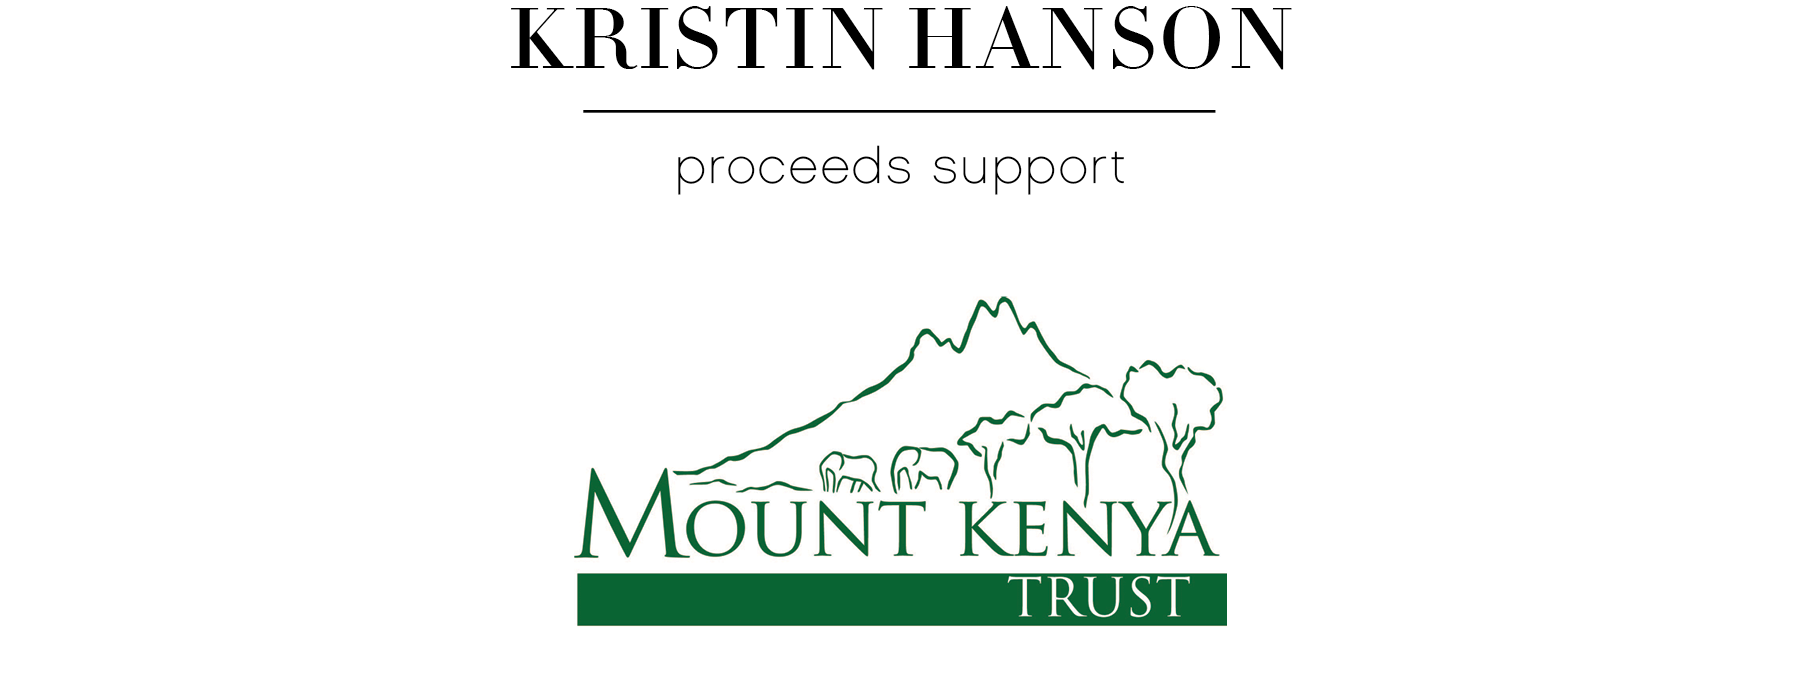 Kristin Hanson supporting Mount Kenya Trust